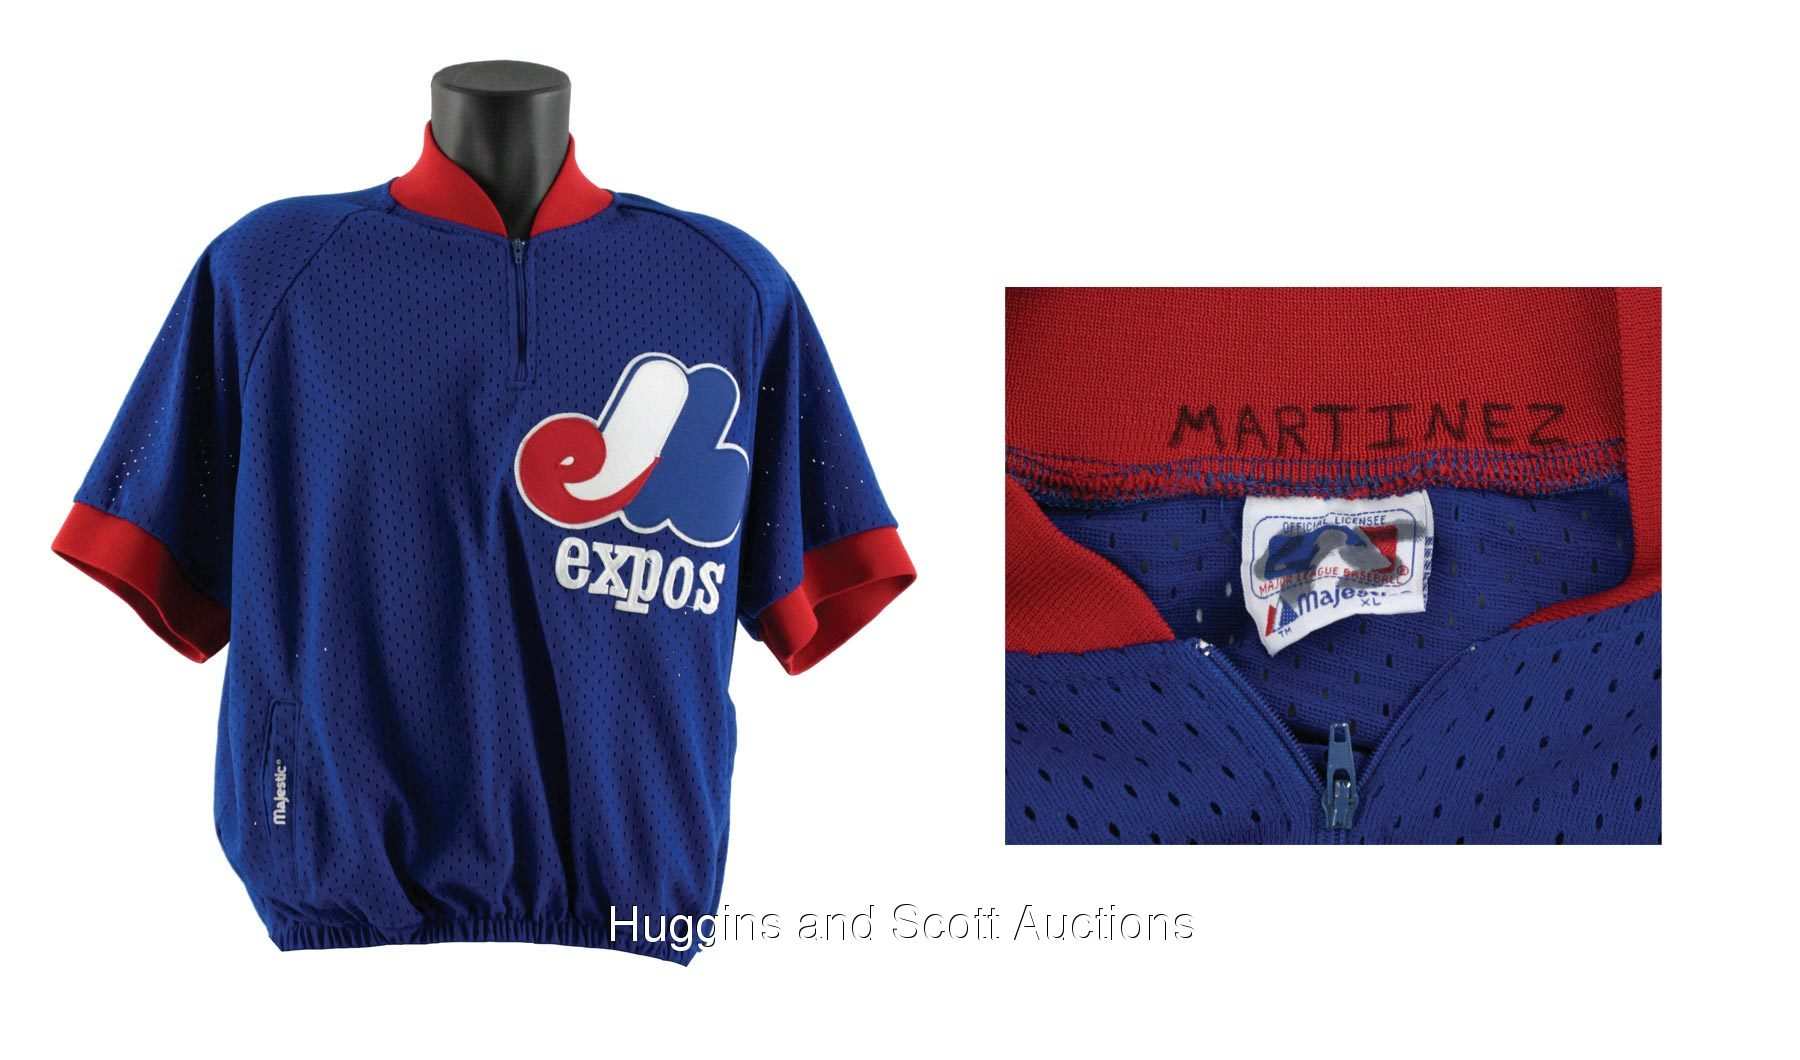 factory authentic c0a32 8b69f Pedro Martinez 1994 Montreal Expos Game-Worn Warm-Up Jersey